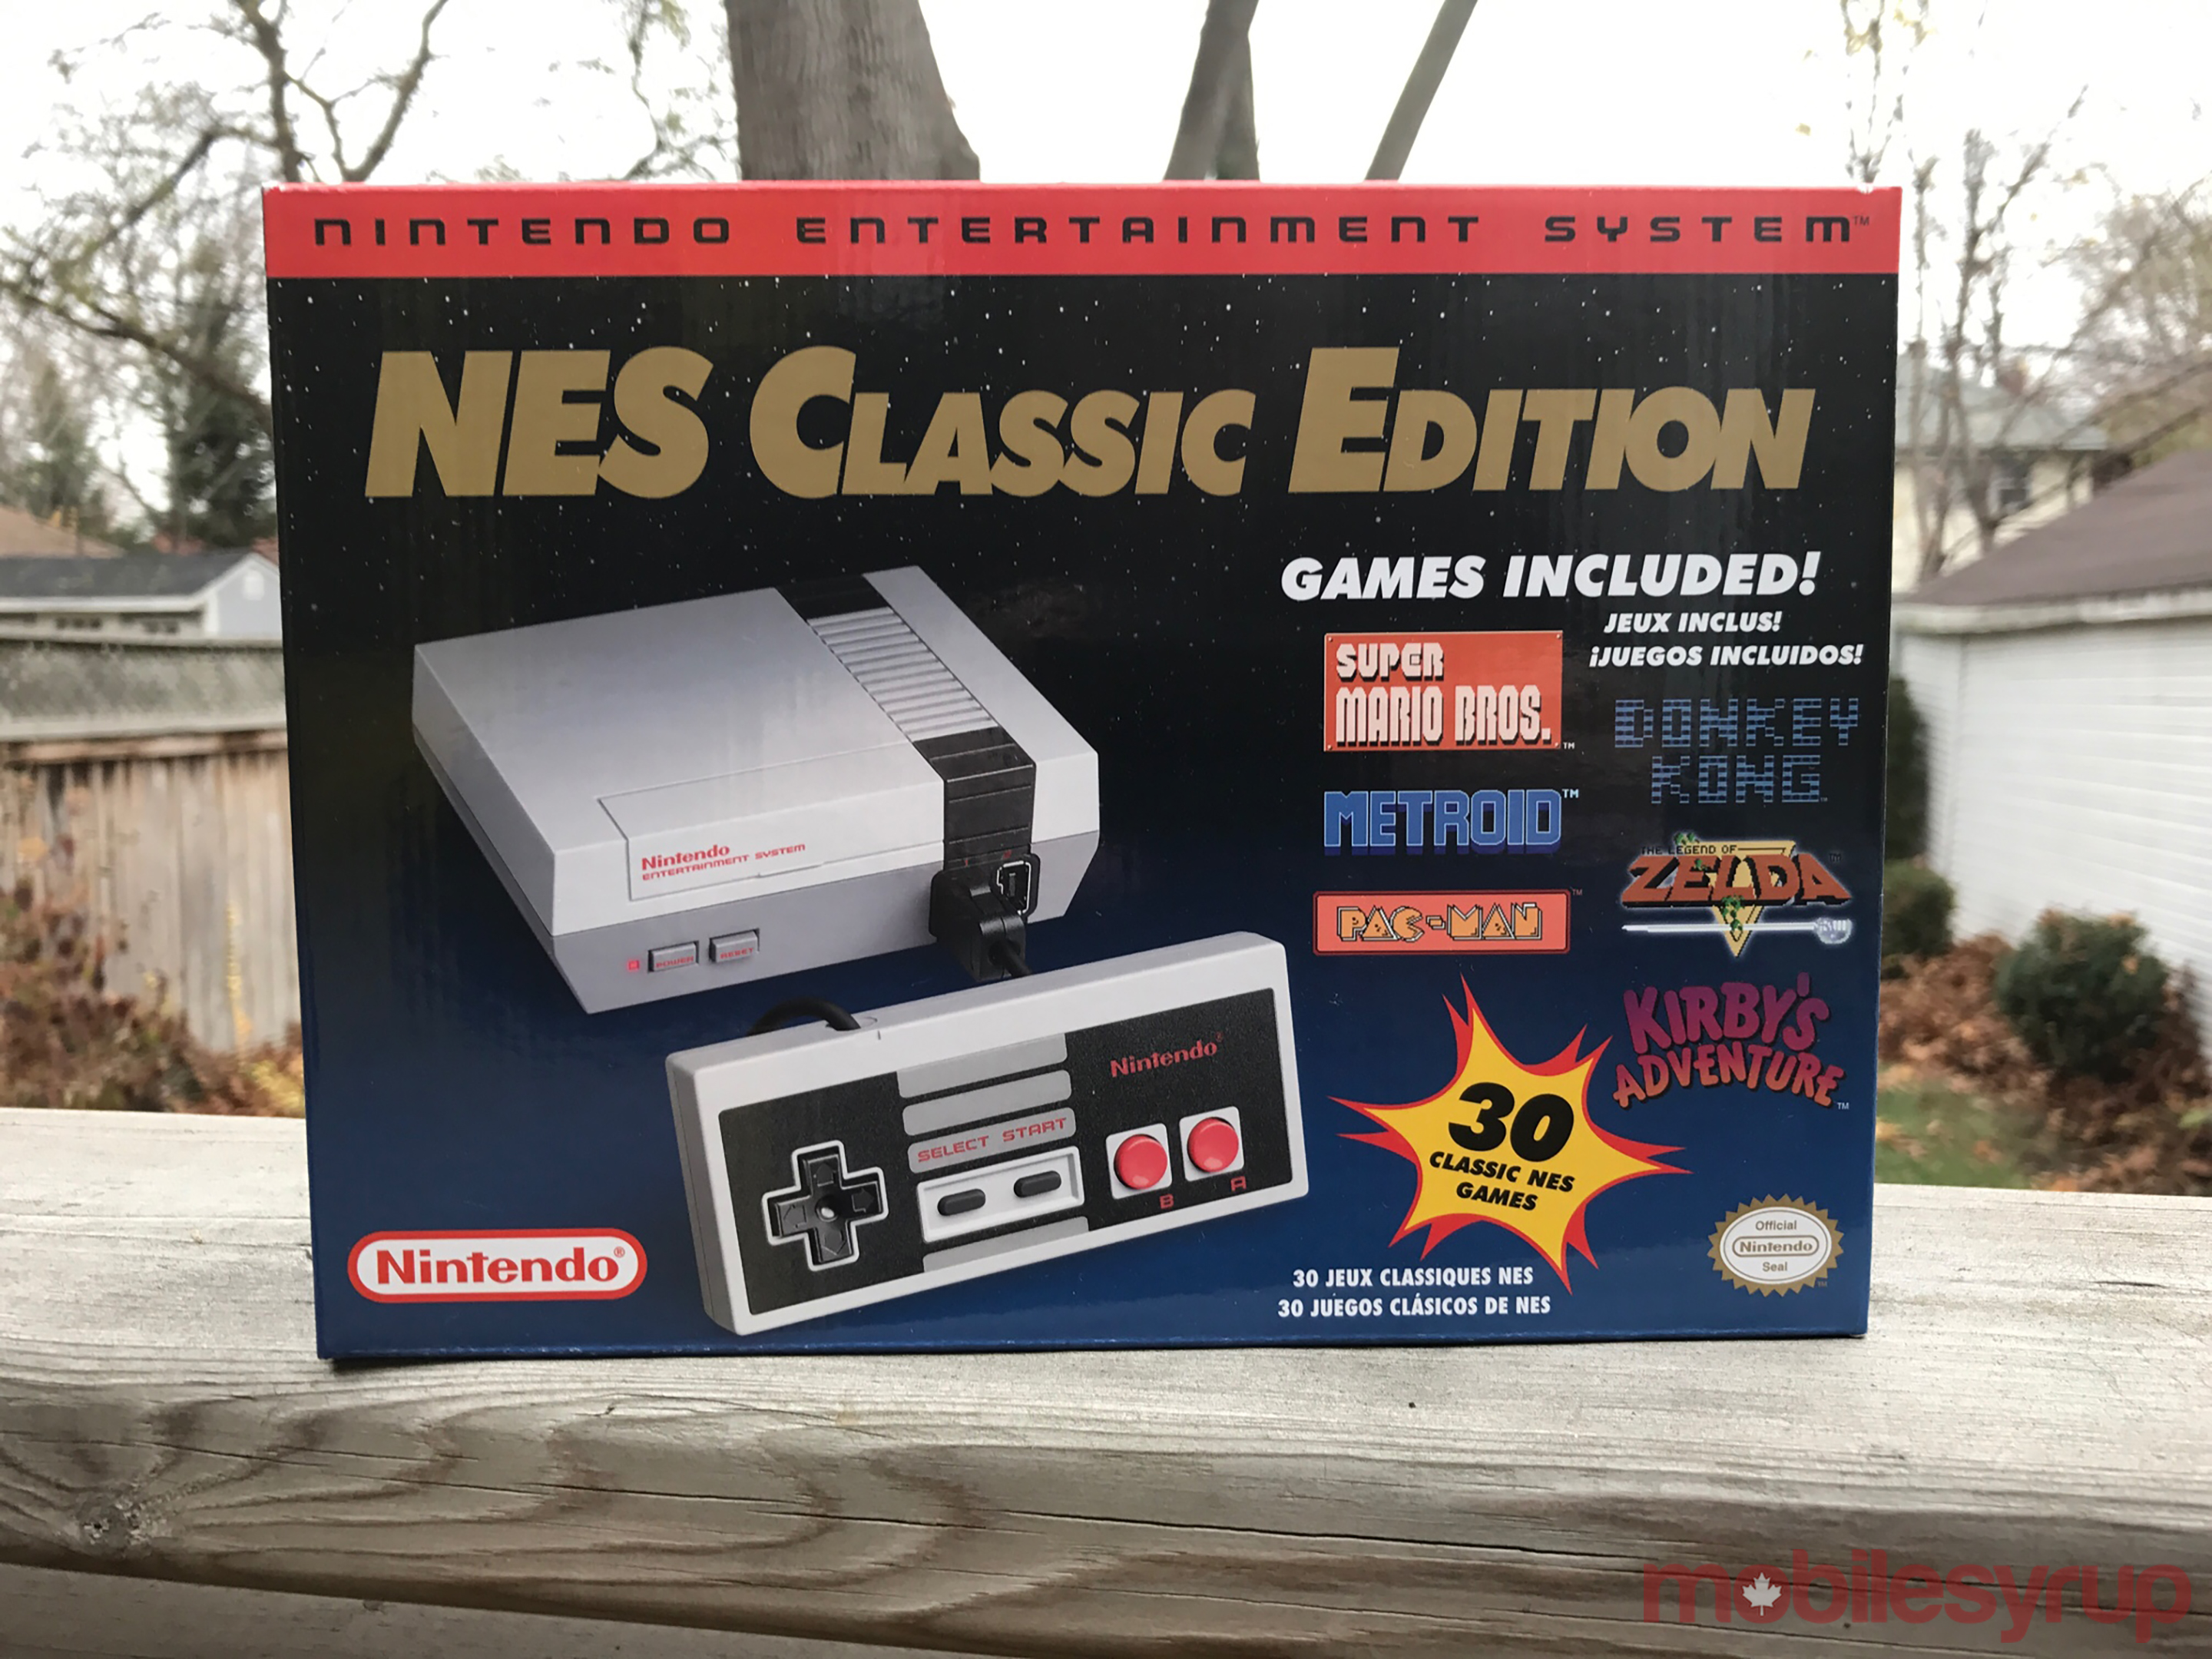 Nintendo Canada Confirms Nes Classic Edition Will Be Available June 29th